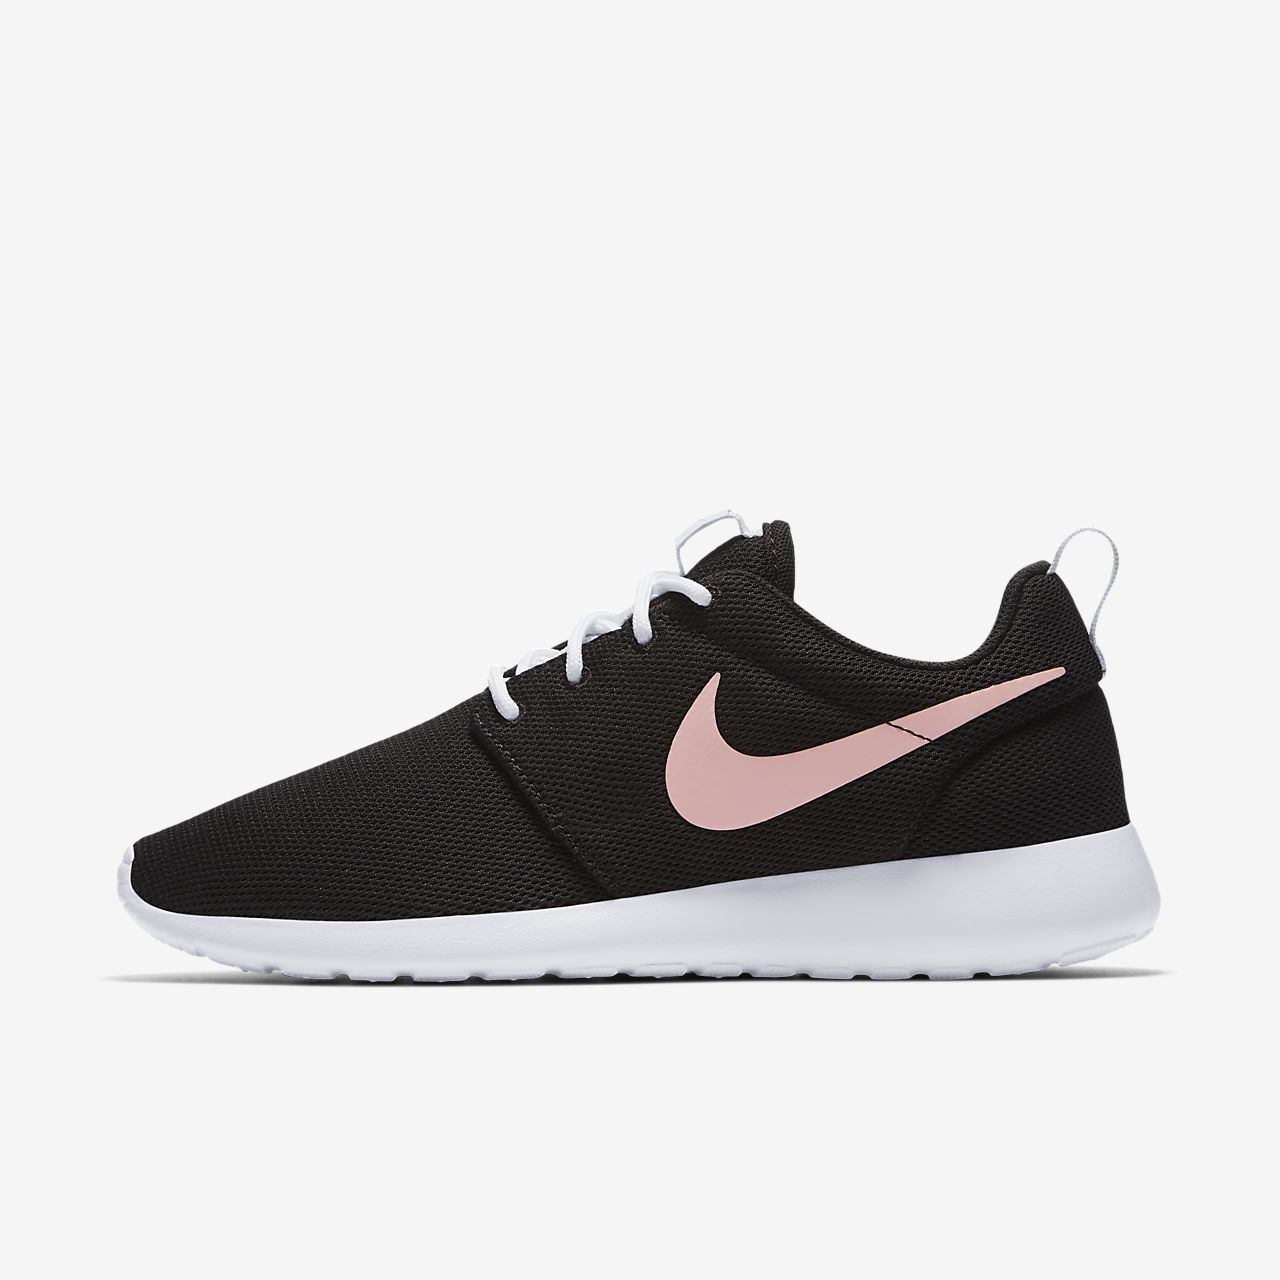 Nike Roshe One Womens Shoe